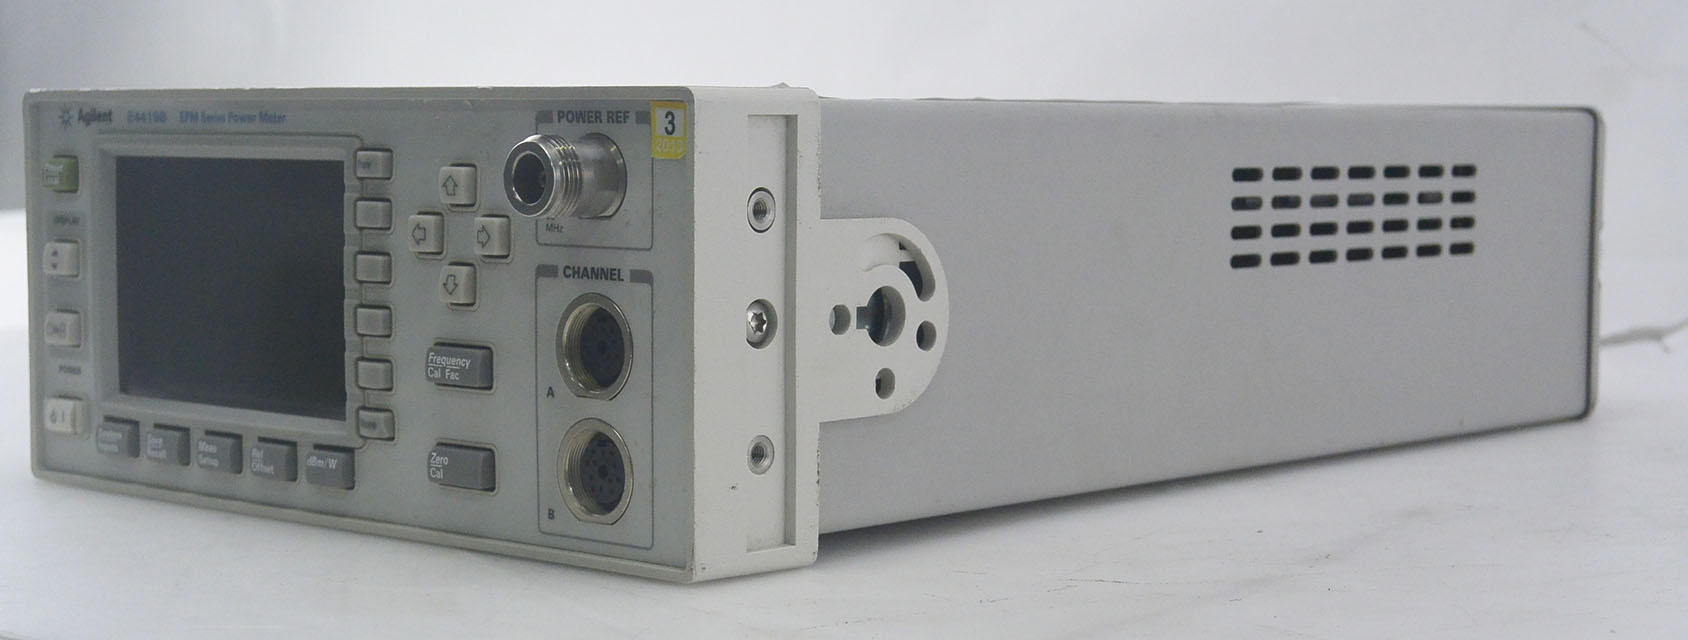 Keysight(Agilent) E4419B EPM Series Dual-Channel Power Meter